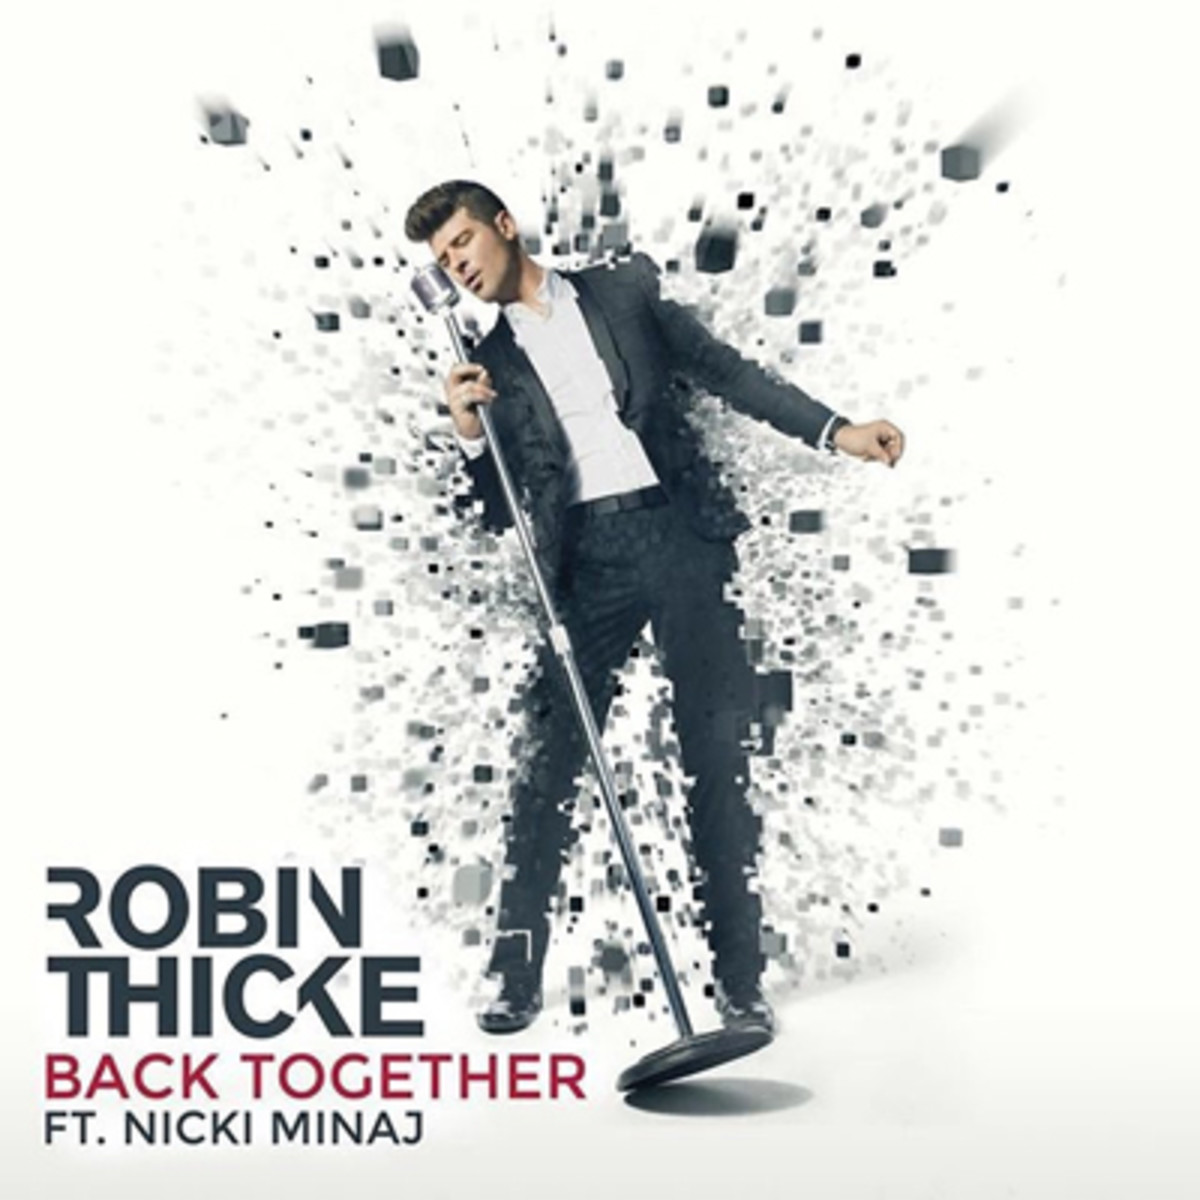 robin-thicke-back-together.jpg